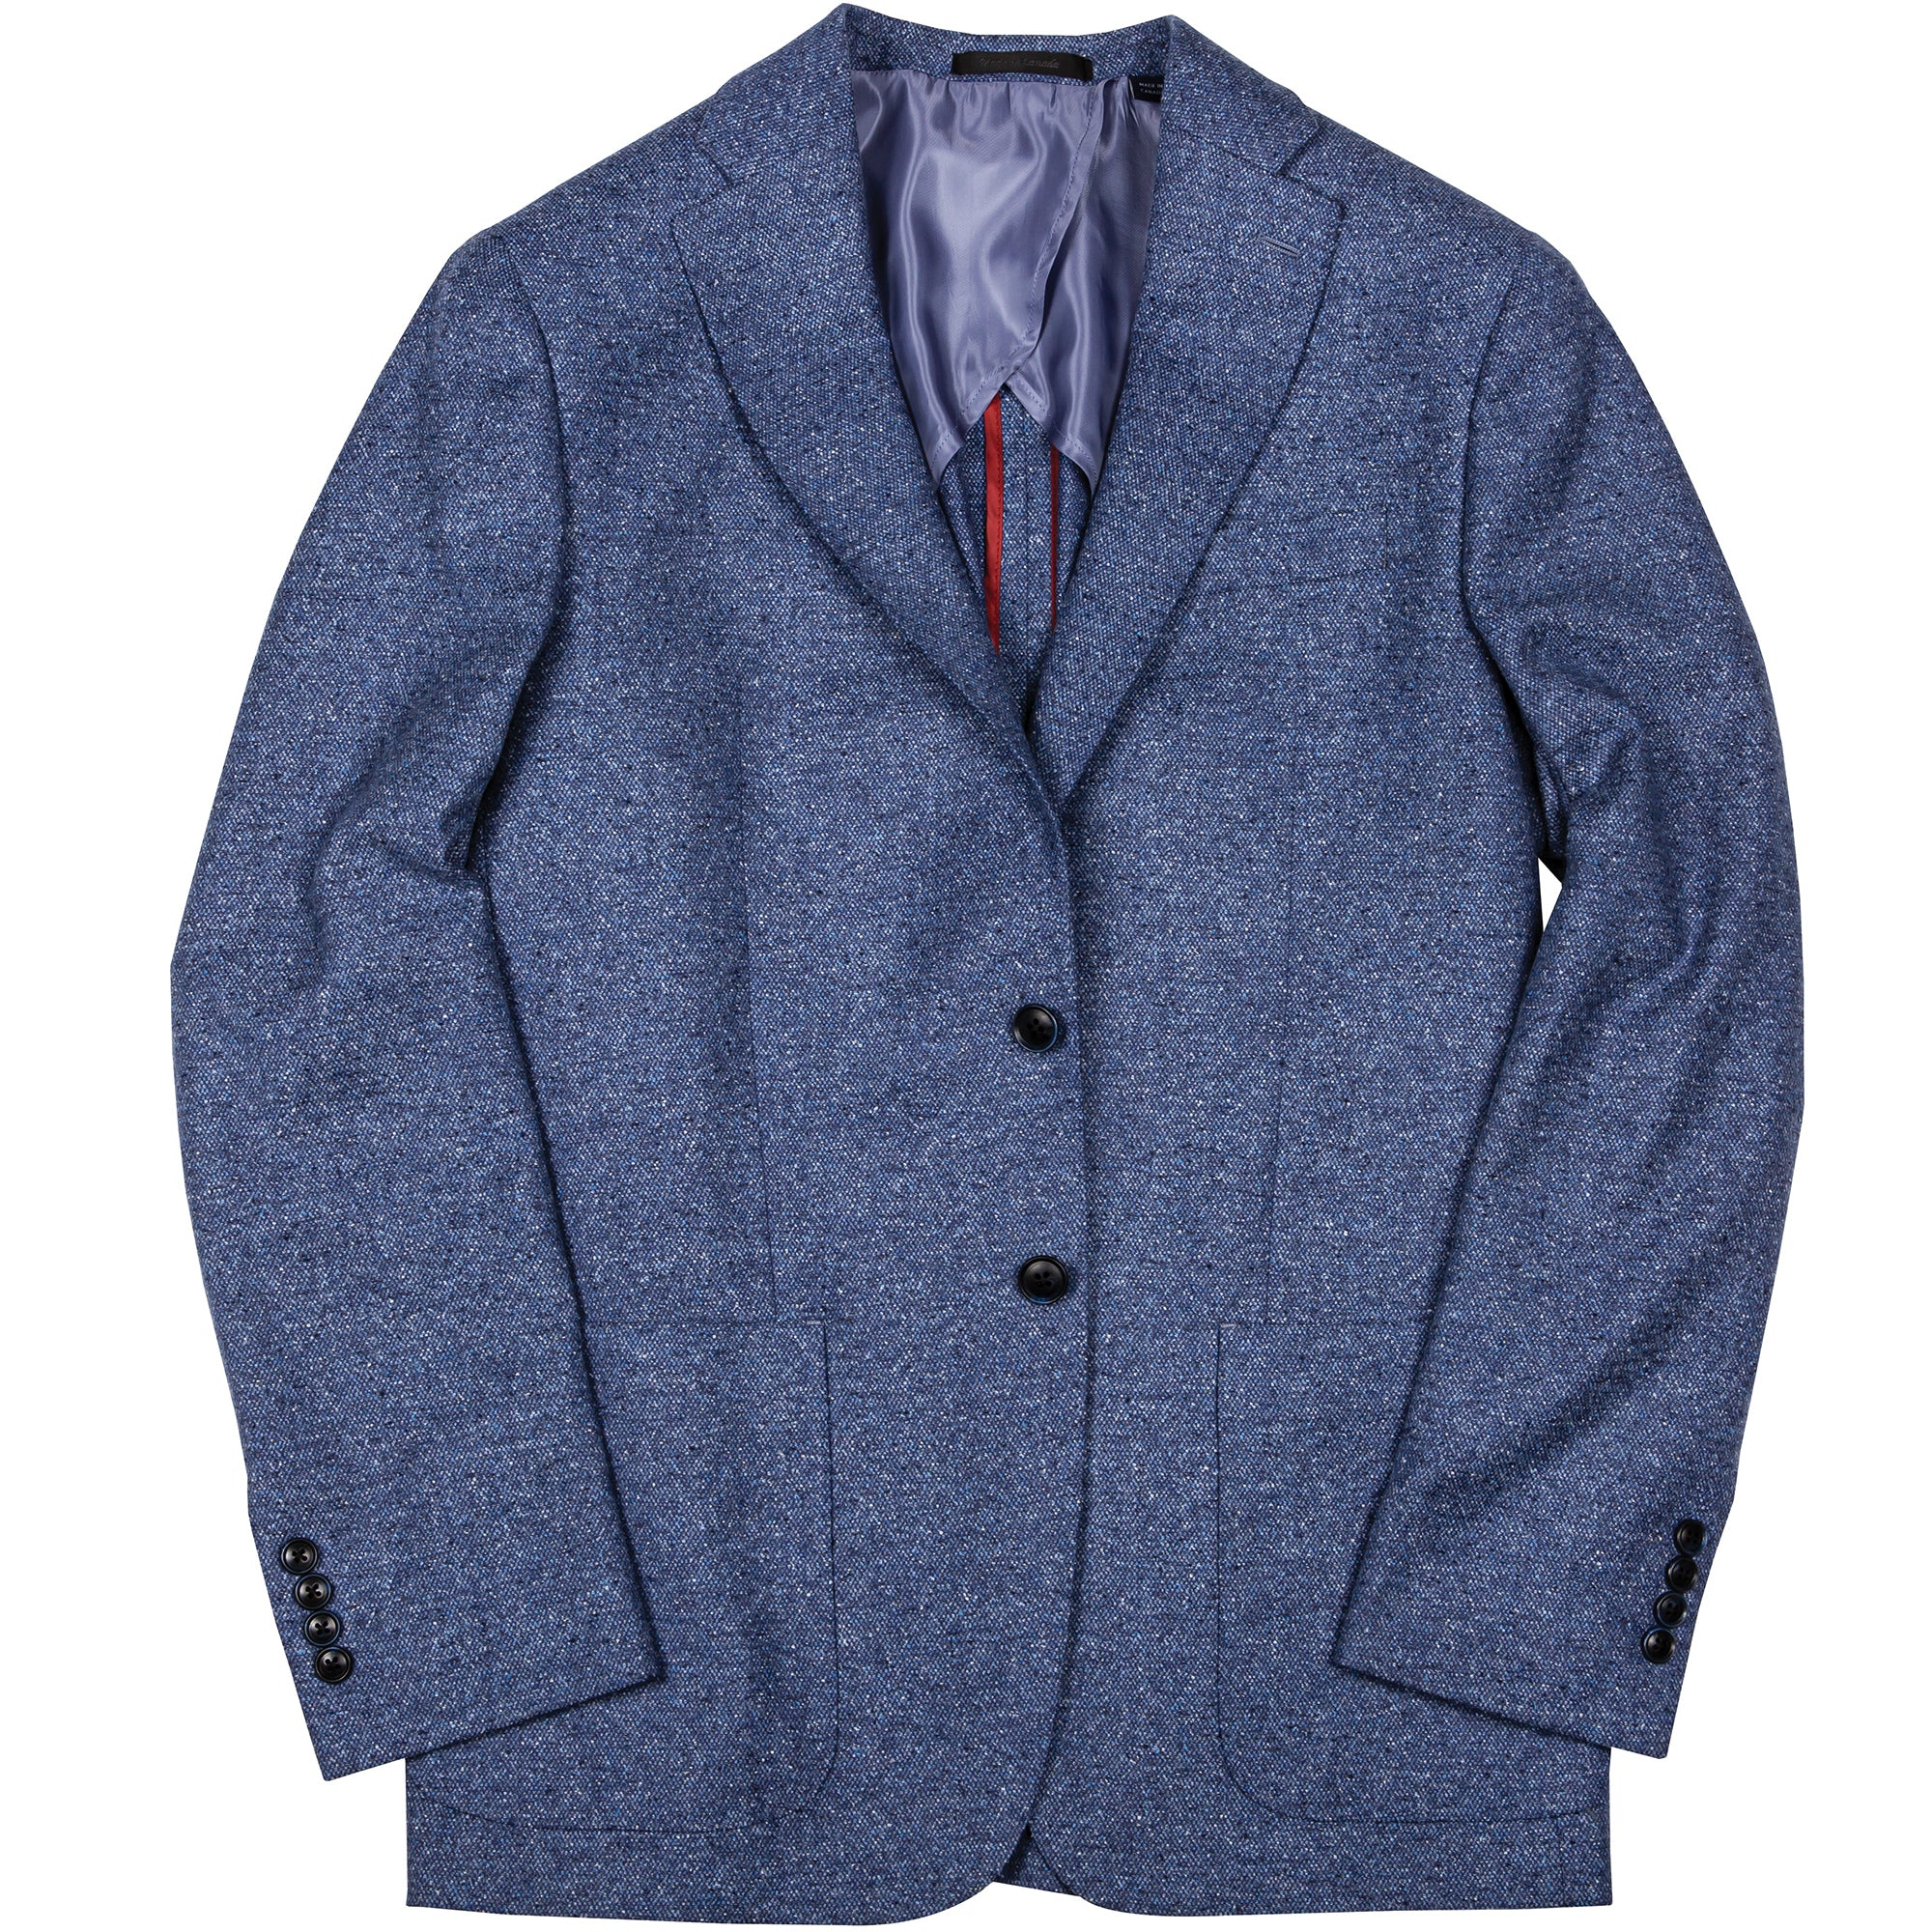 Zignone Blue Donegal Sport Coat